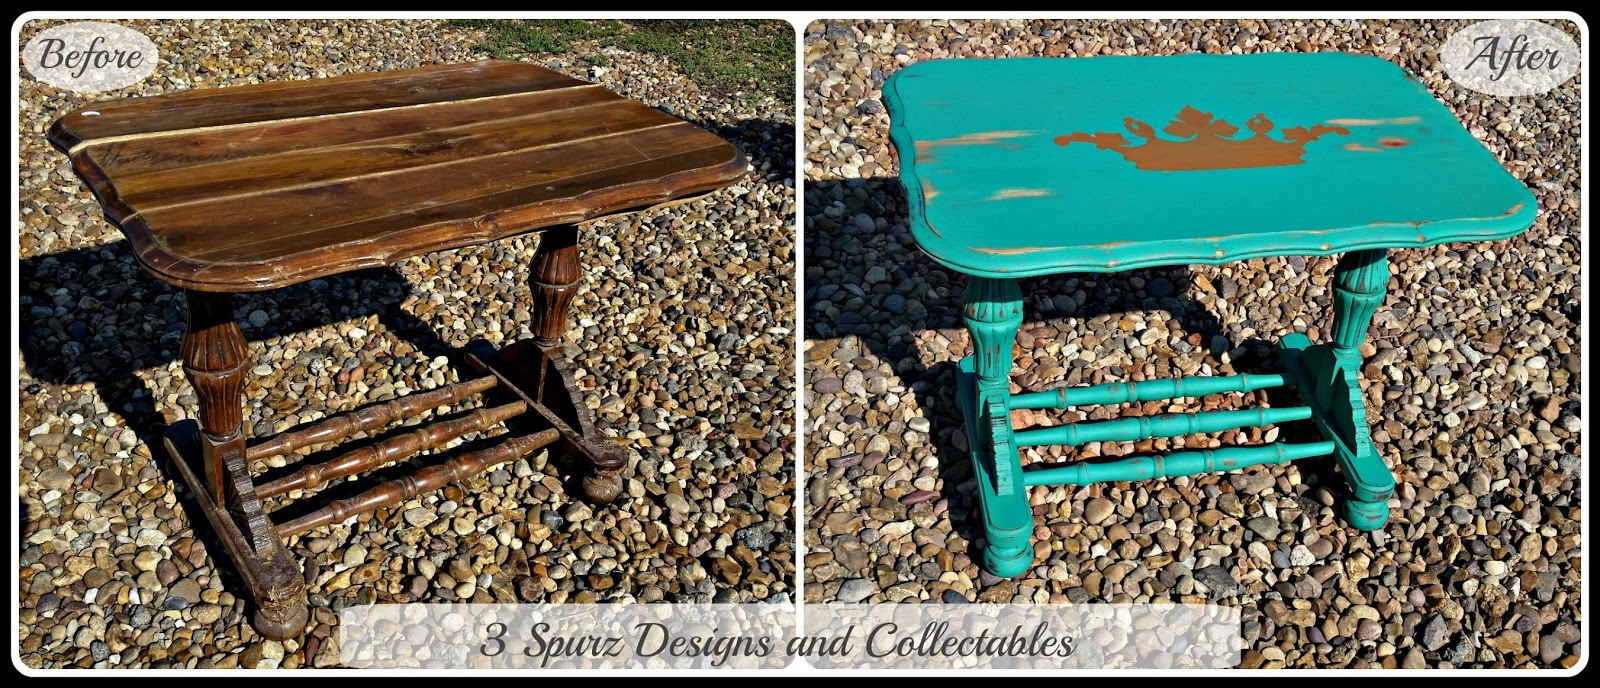 3 Spurz DandC Repurposed Refurbished Creations Gallery : emerald2Bsmall2Btable2Bba from 3spurzdesignsandcollectables.blogspot.it size 1600 x 688 jpeg 465kB